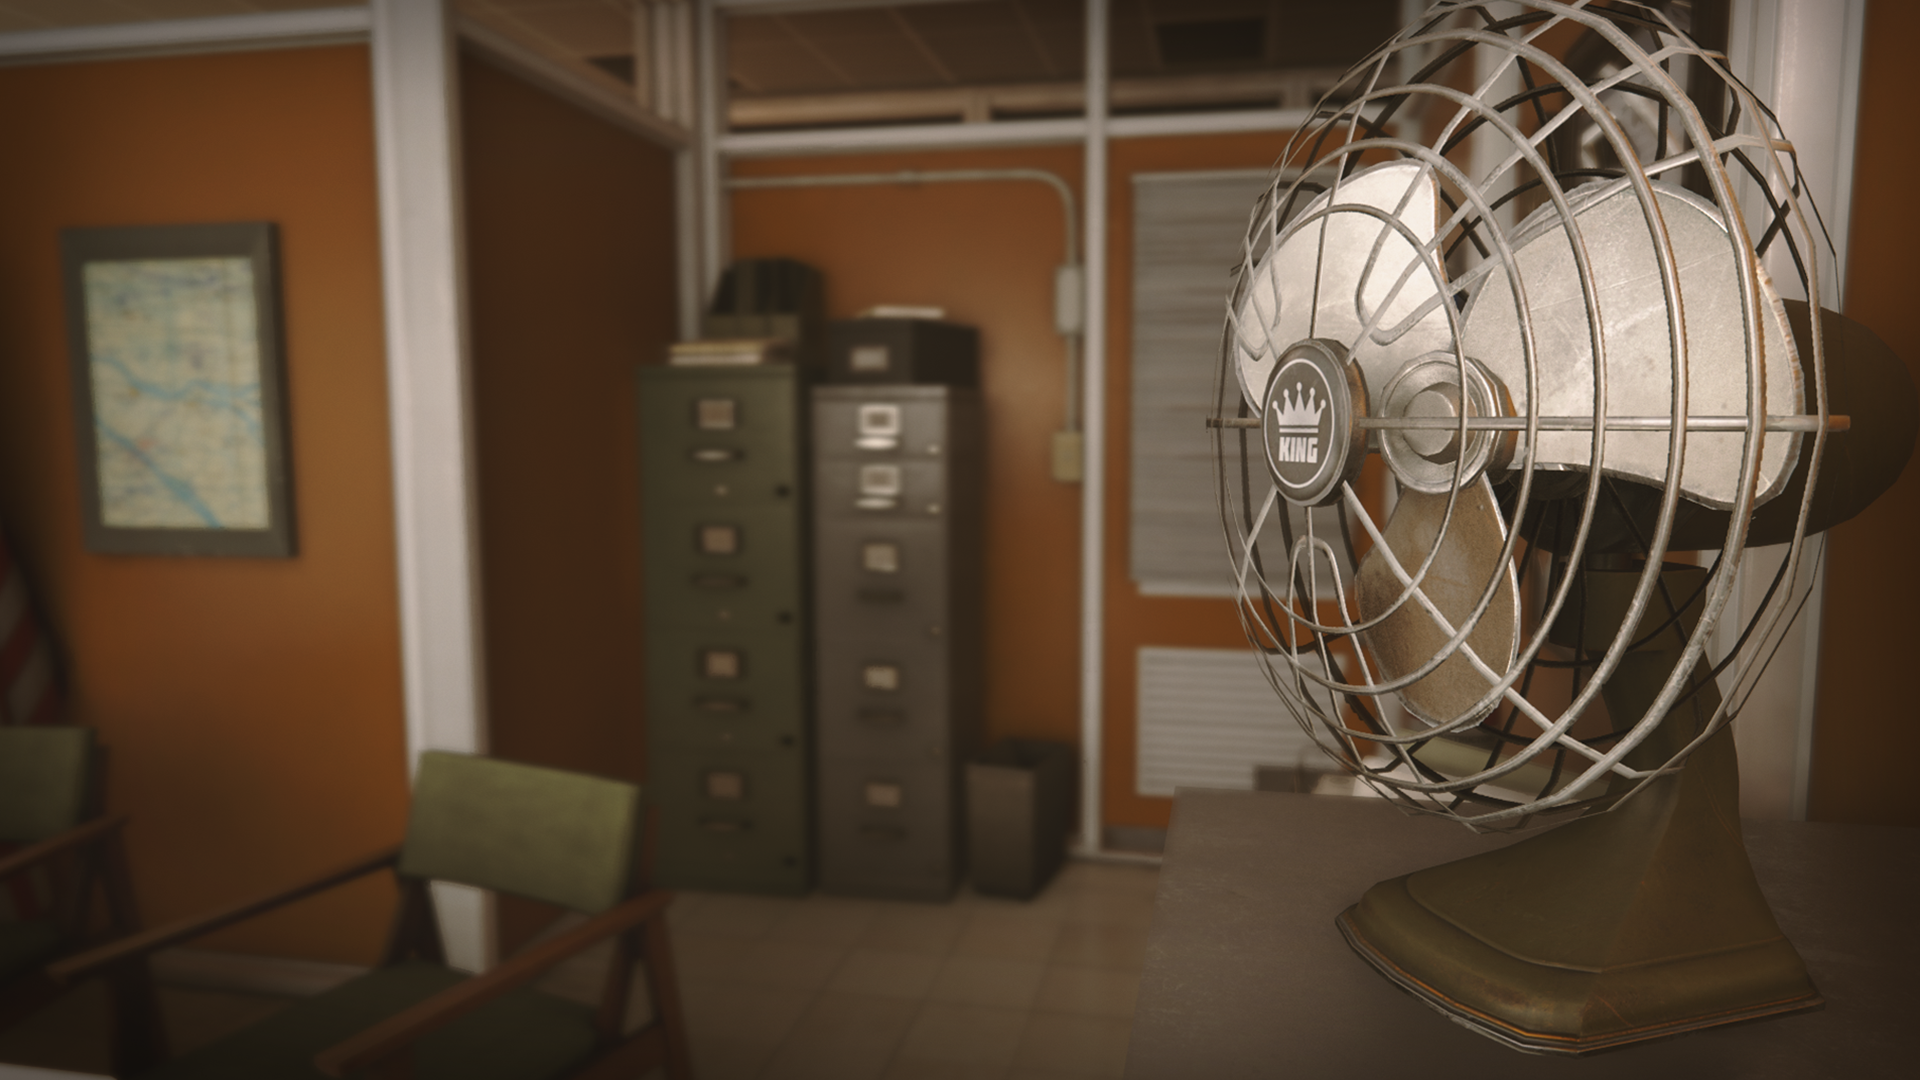 Retro Office Environment By Dekogon Studios In Environments   UE4  Marketplace